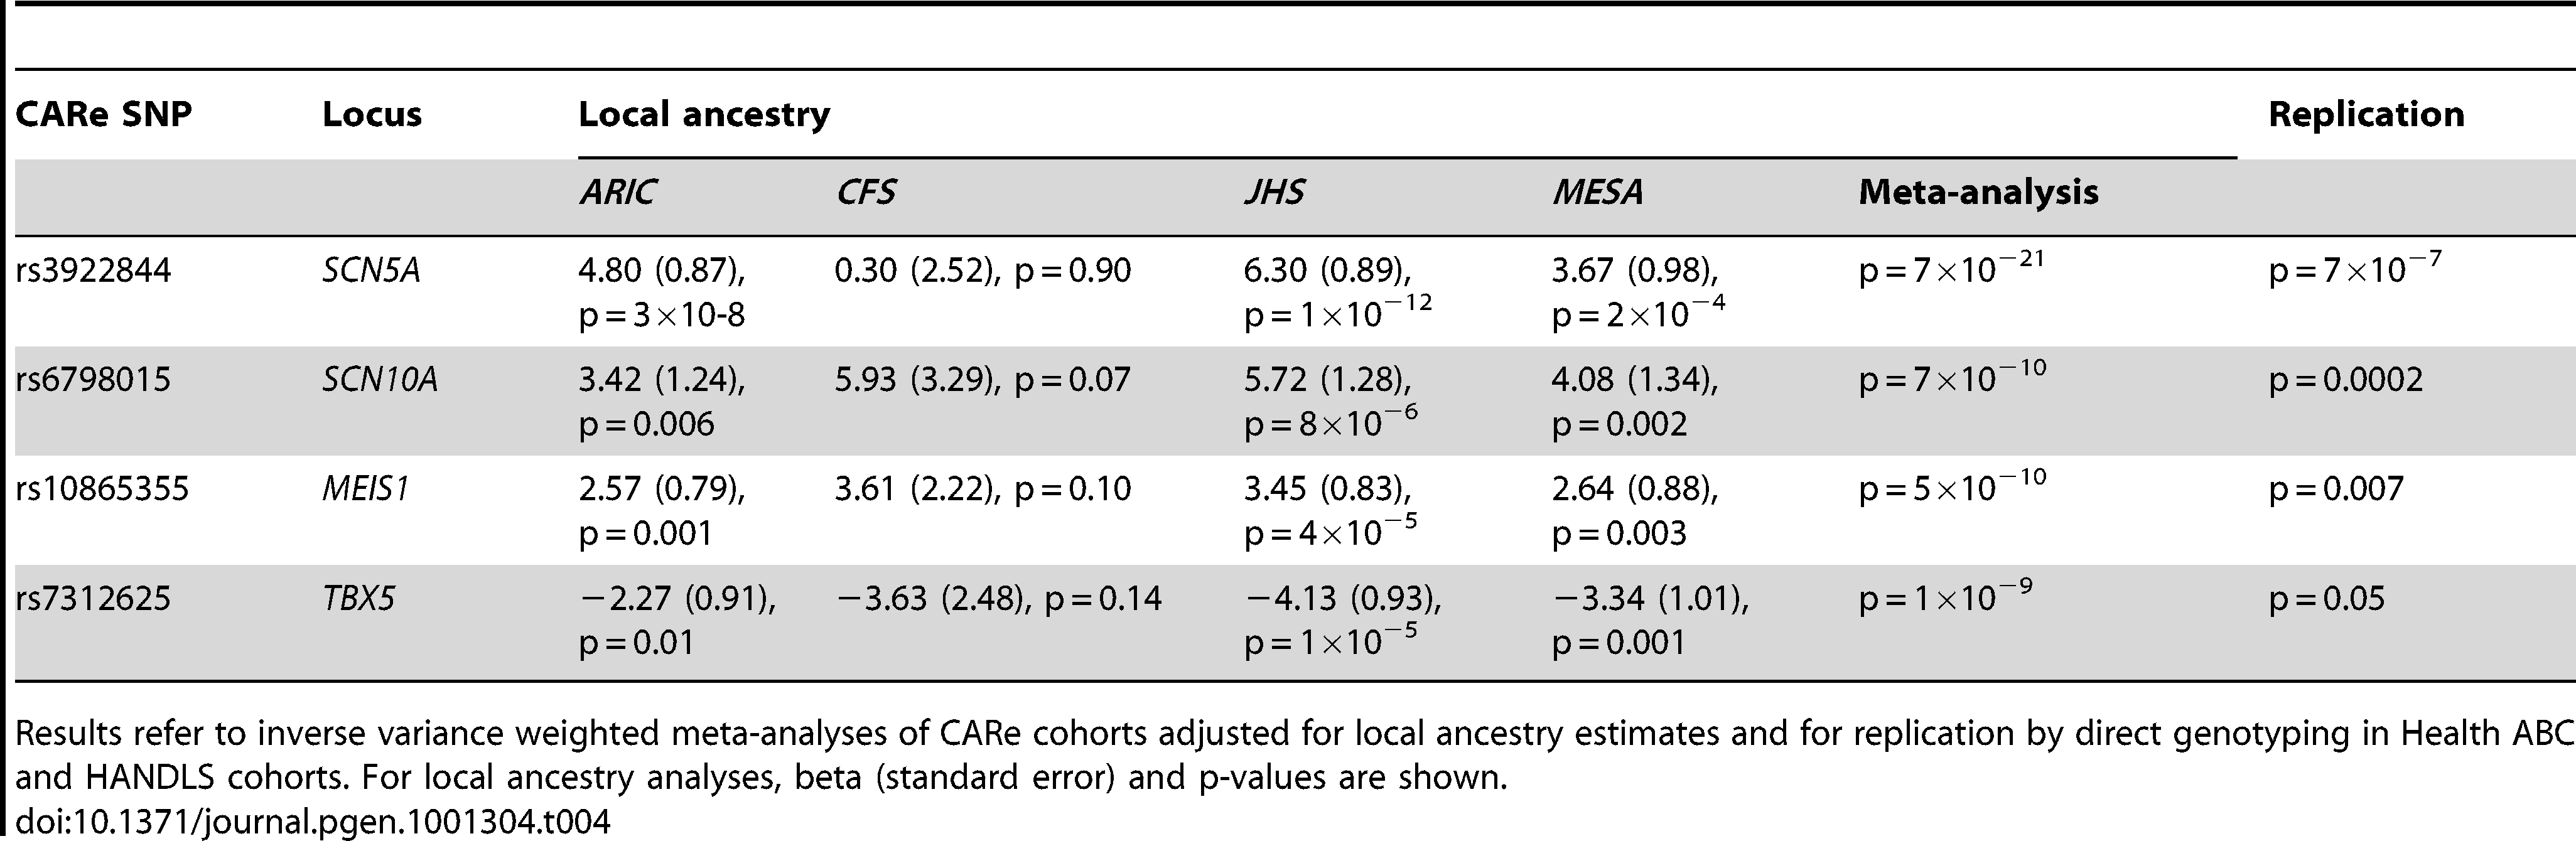 Replication and local ancestry analyses of SNPs with the lowest p-value in each cluster of SNPs reaching genome-wide significance.